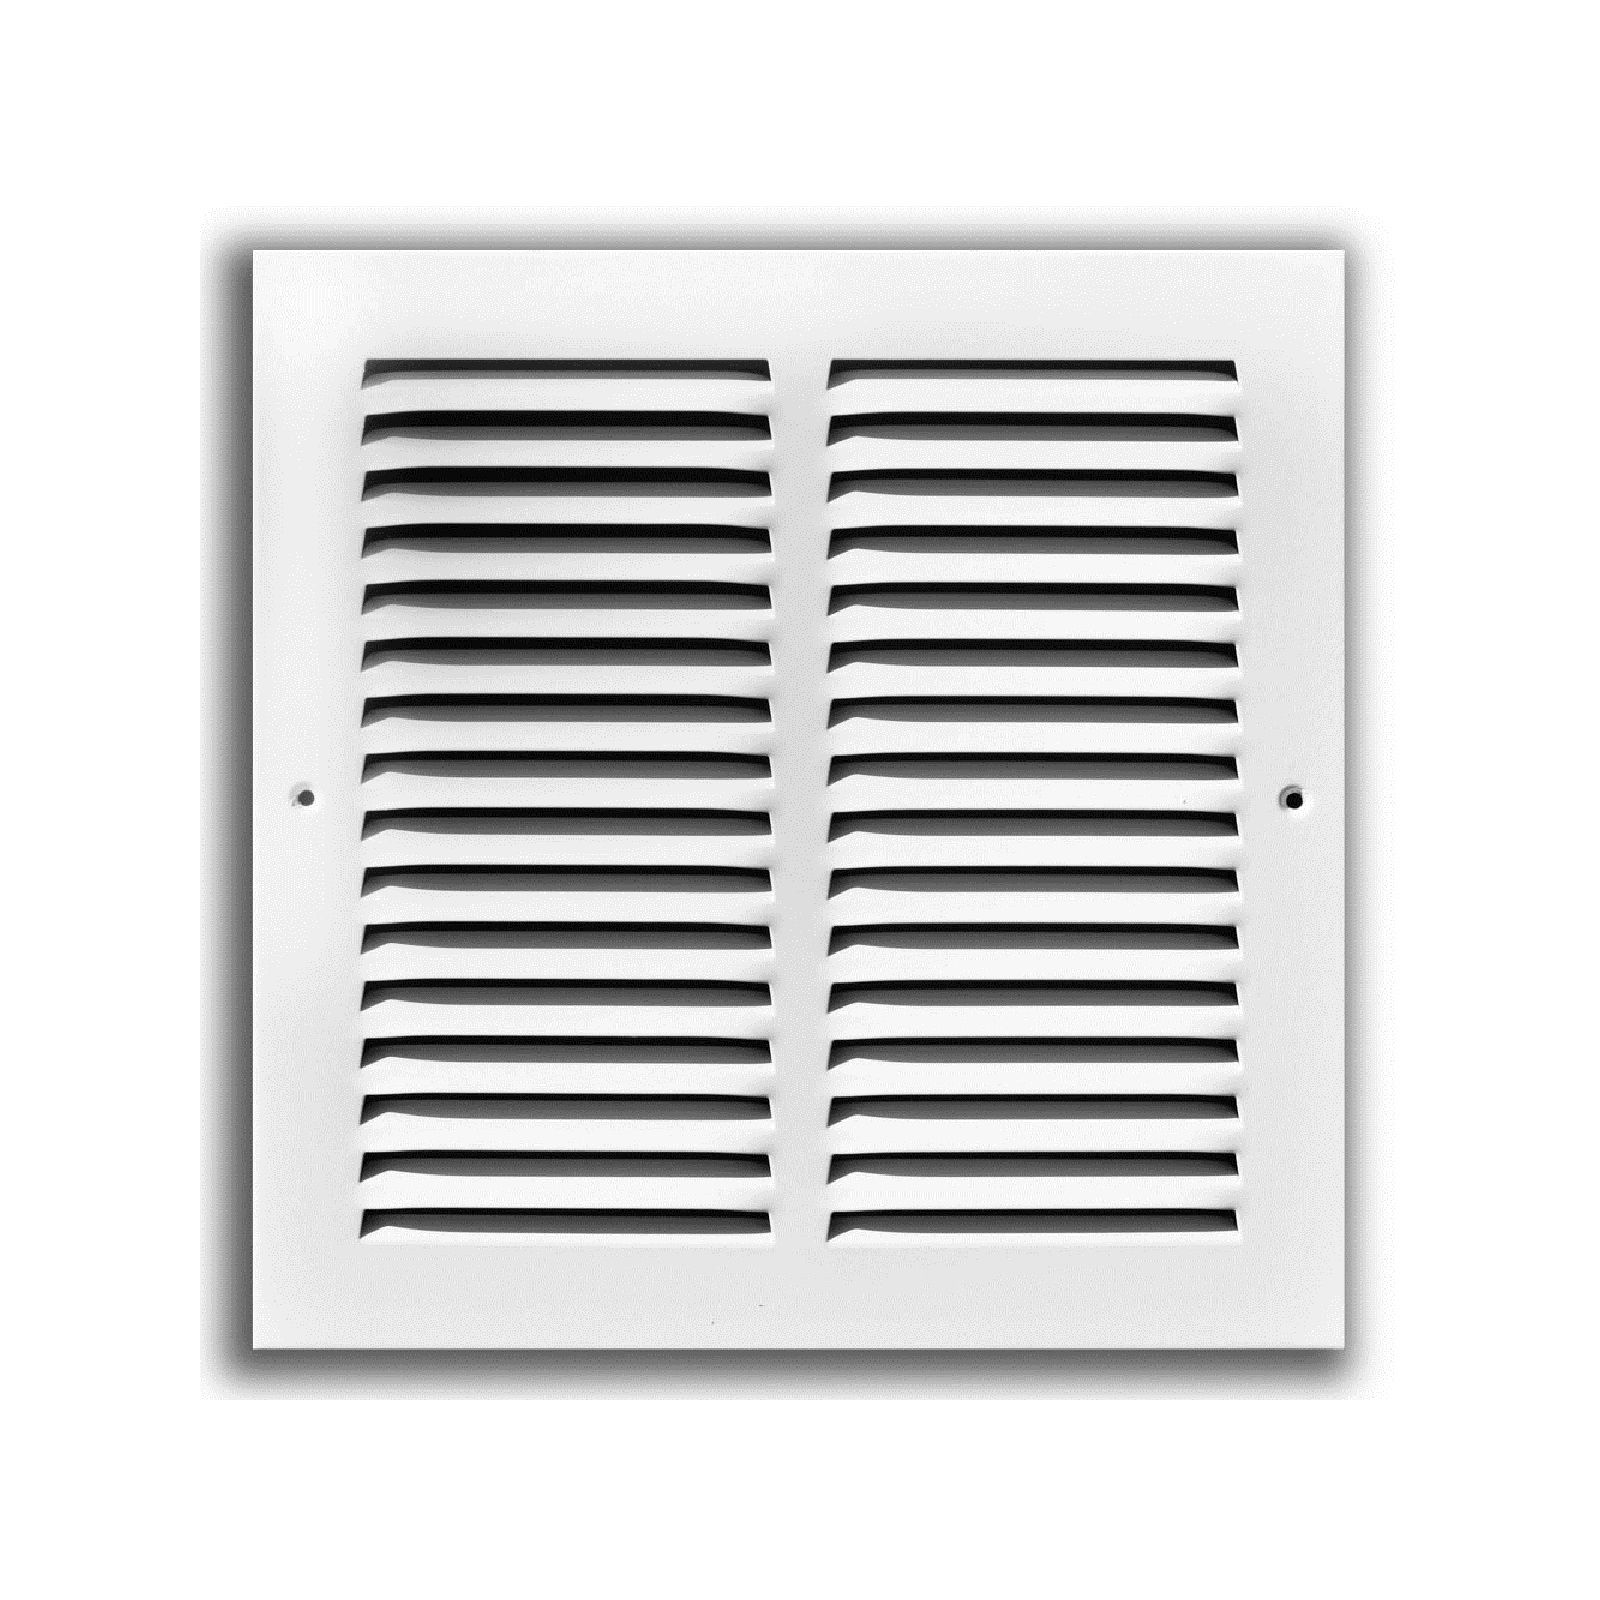 "TRUaire 170 30X12 - Steel Return Air Grille - 1/2"" Spaced Fin, White, 30"" X 12"""